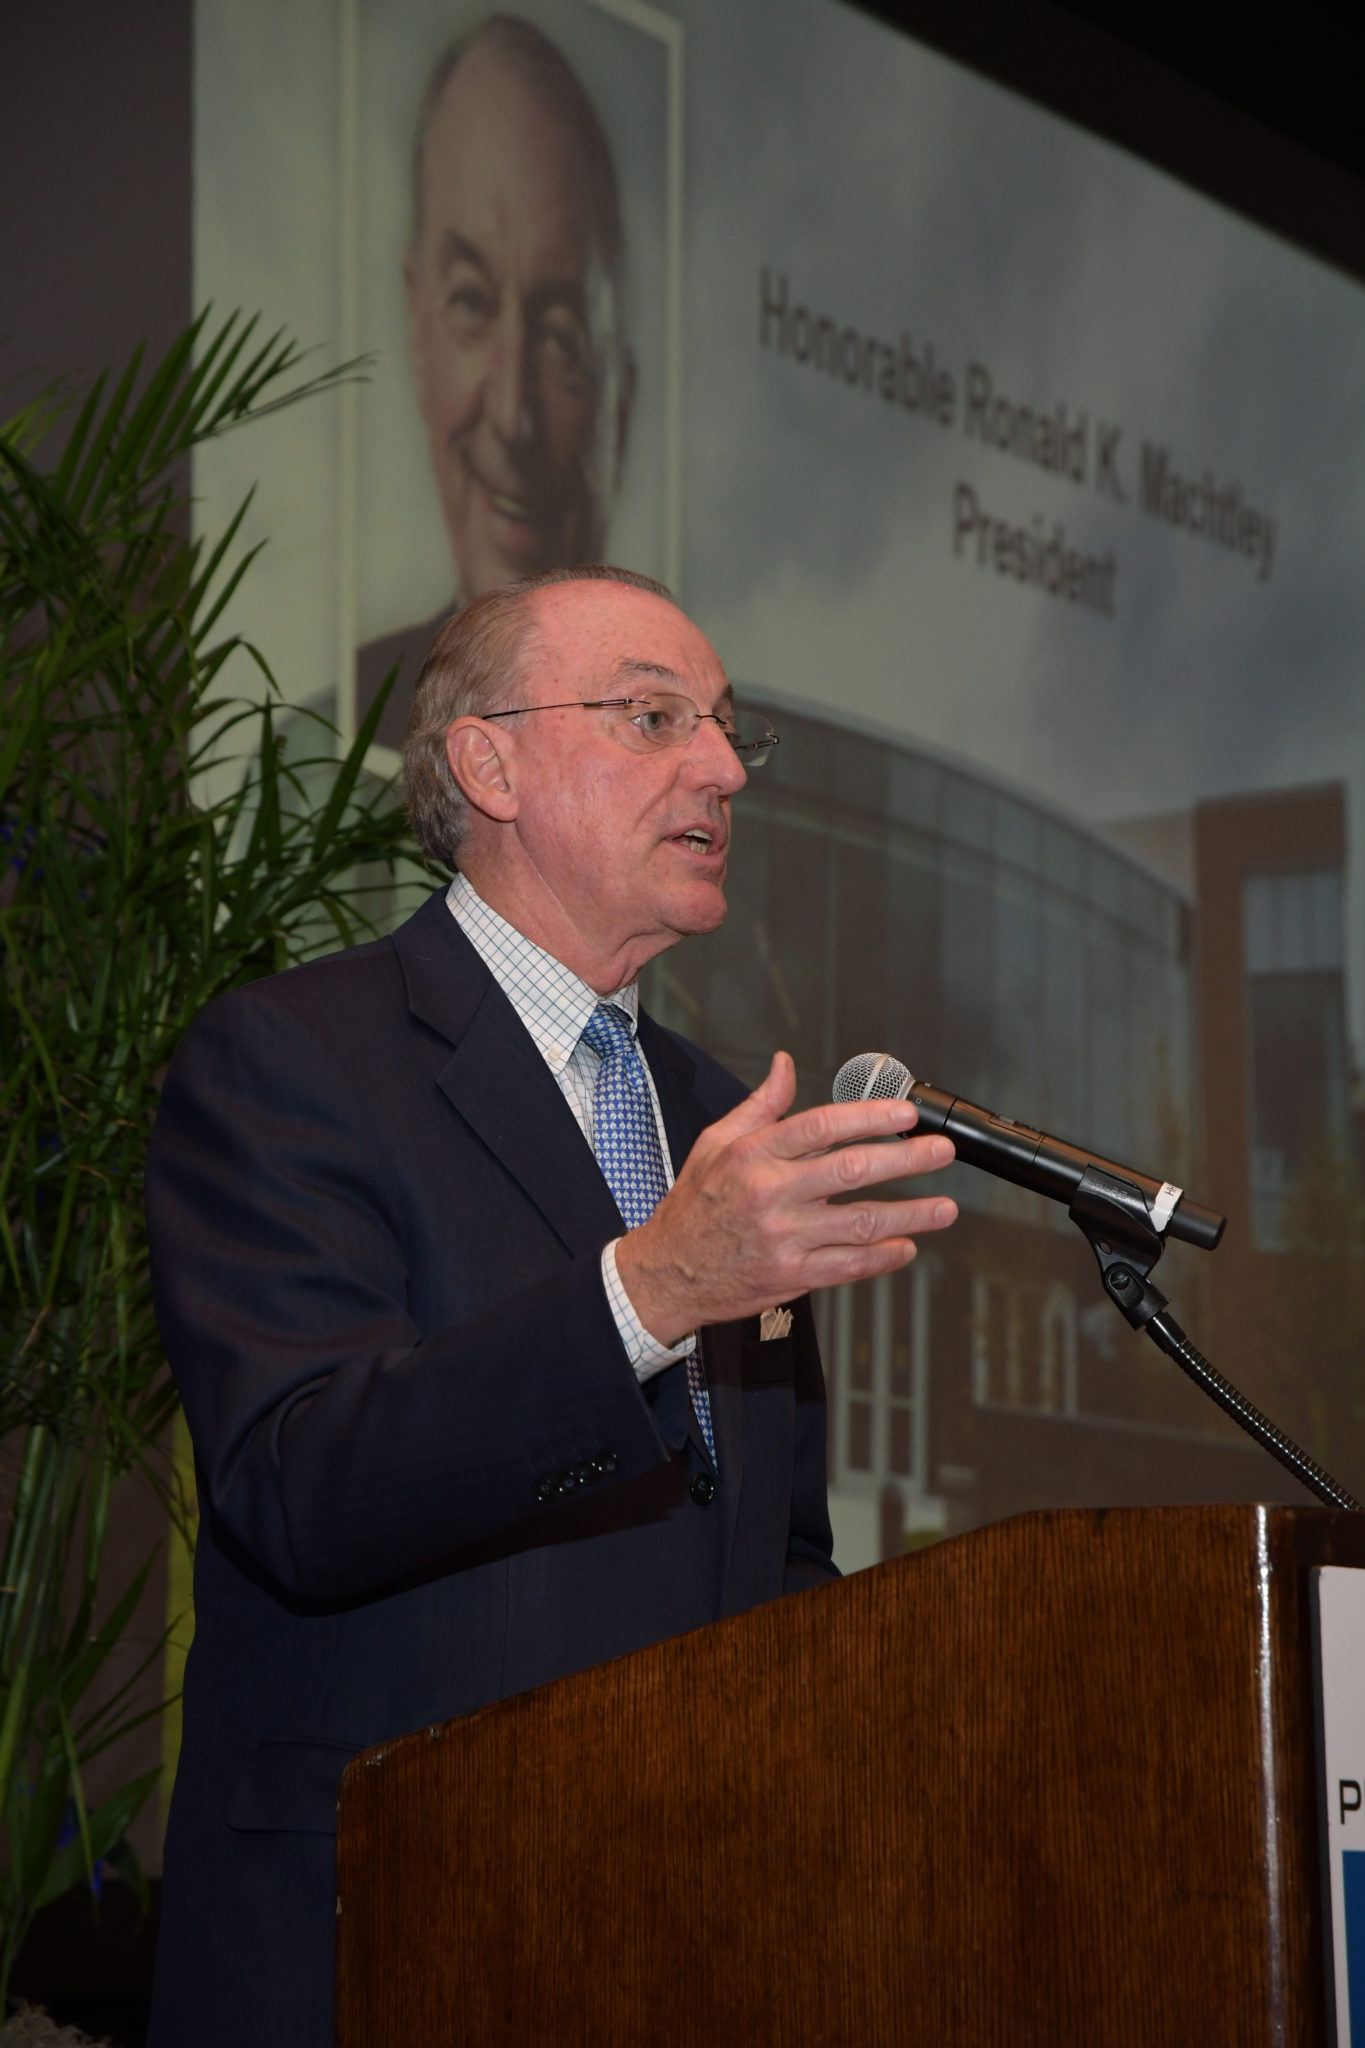 BRYANT UNIVERSITY PRESIDENT Ronald K. Machtley gave the keynote speech at the 2017 Business Excellence Awards dinner. He emphasized how worthy all this year's winners were for their accomplishments. / PBN PHOTO/MIKE SKORSKI